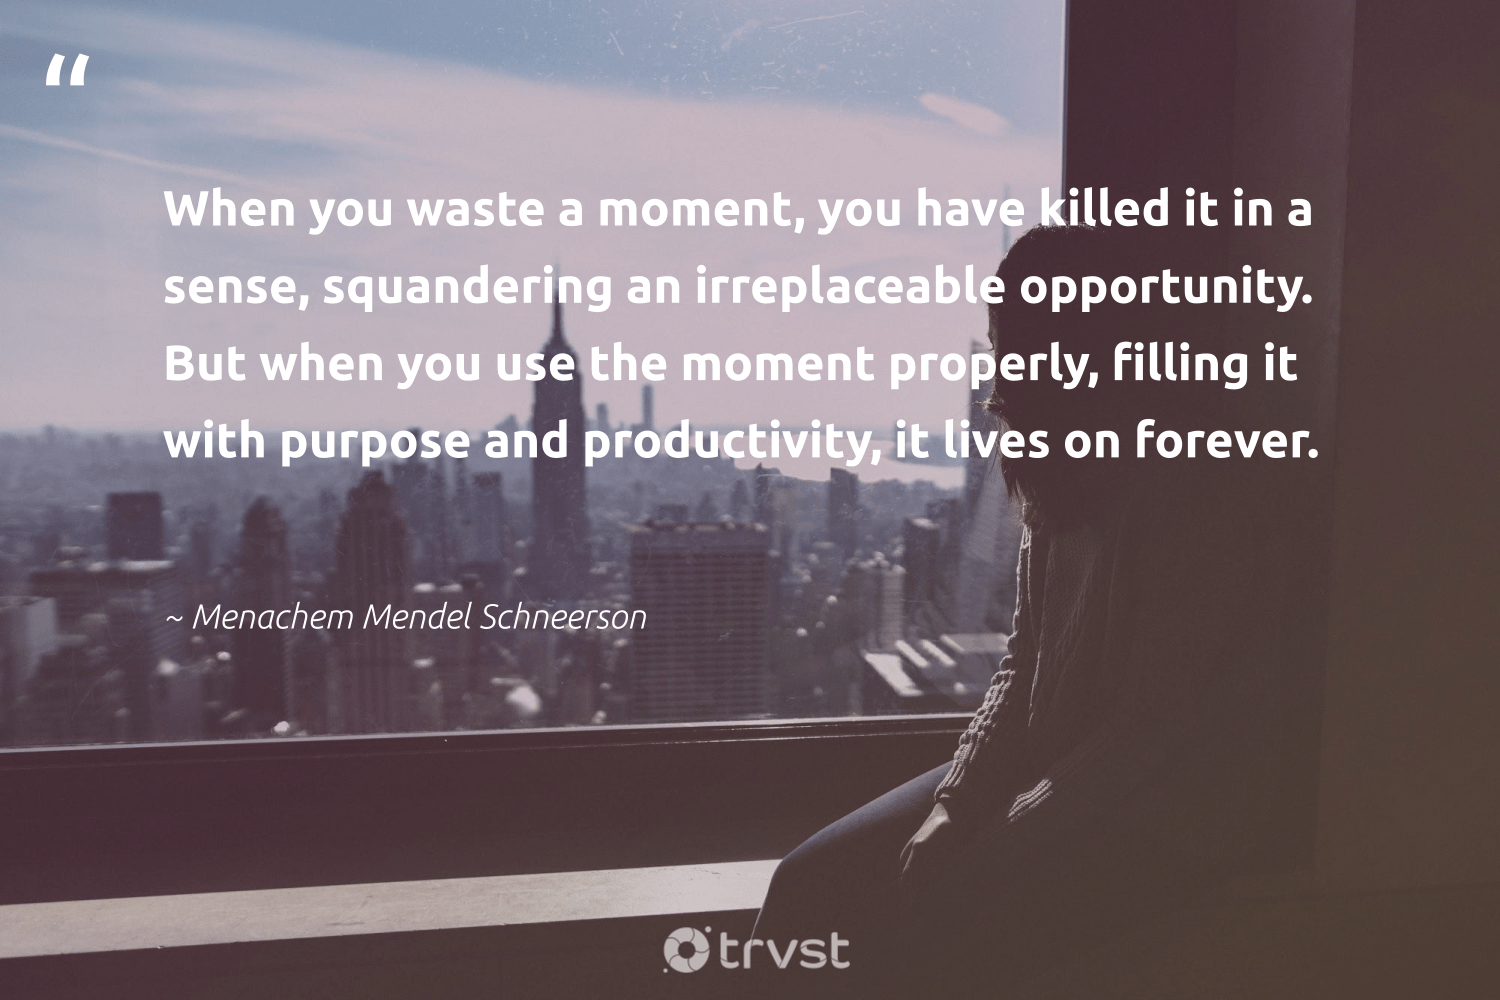 """""""When you waste a moment, you have killed it in a sense, squandering an irreplaceable opportunity. But when you use the moment properly, filling it with purpose and productivity, it lives on forever.""""  - Menachem Mendel Schneerson #trvst #quotes #purpose #waste #productivity #findingpupose #health #begreat #planetearthfirst #findpurpose #changemakers #nevergiveup"""